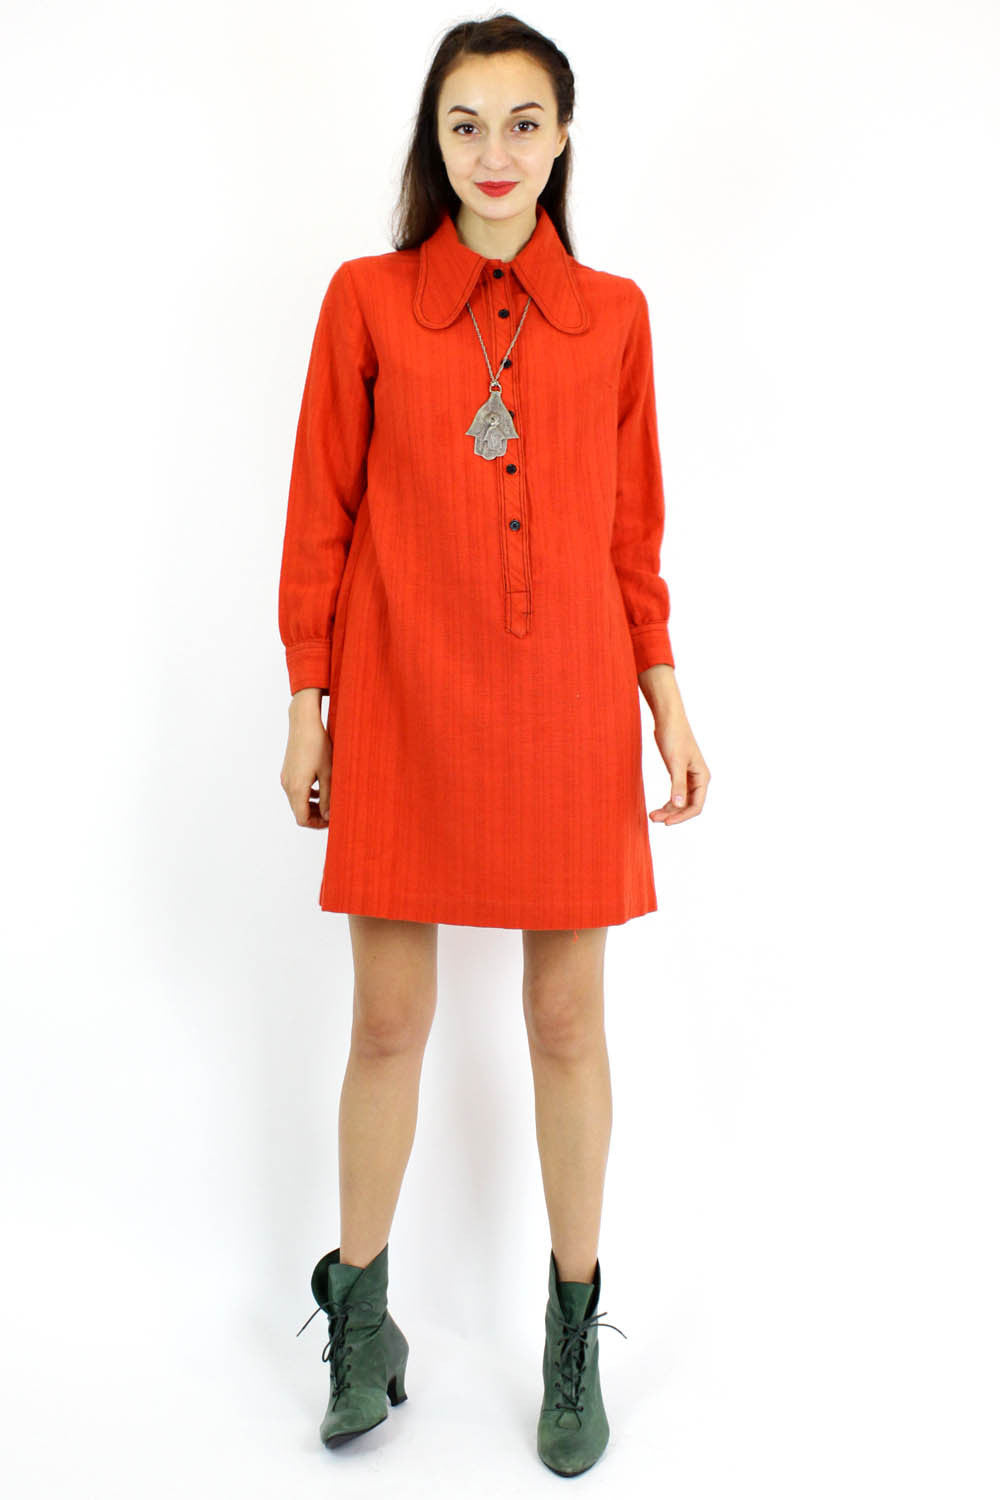 tomato red shirtdress M/L